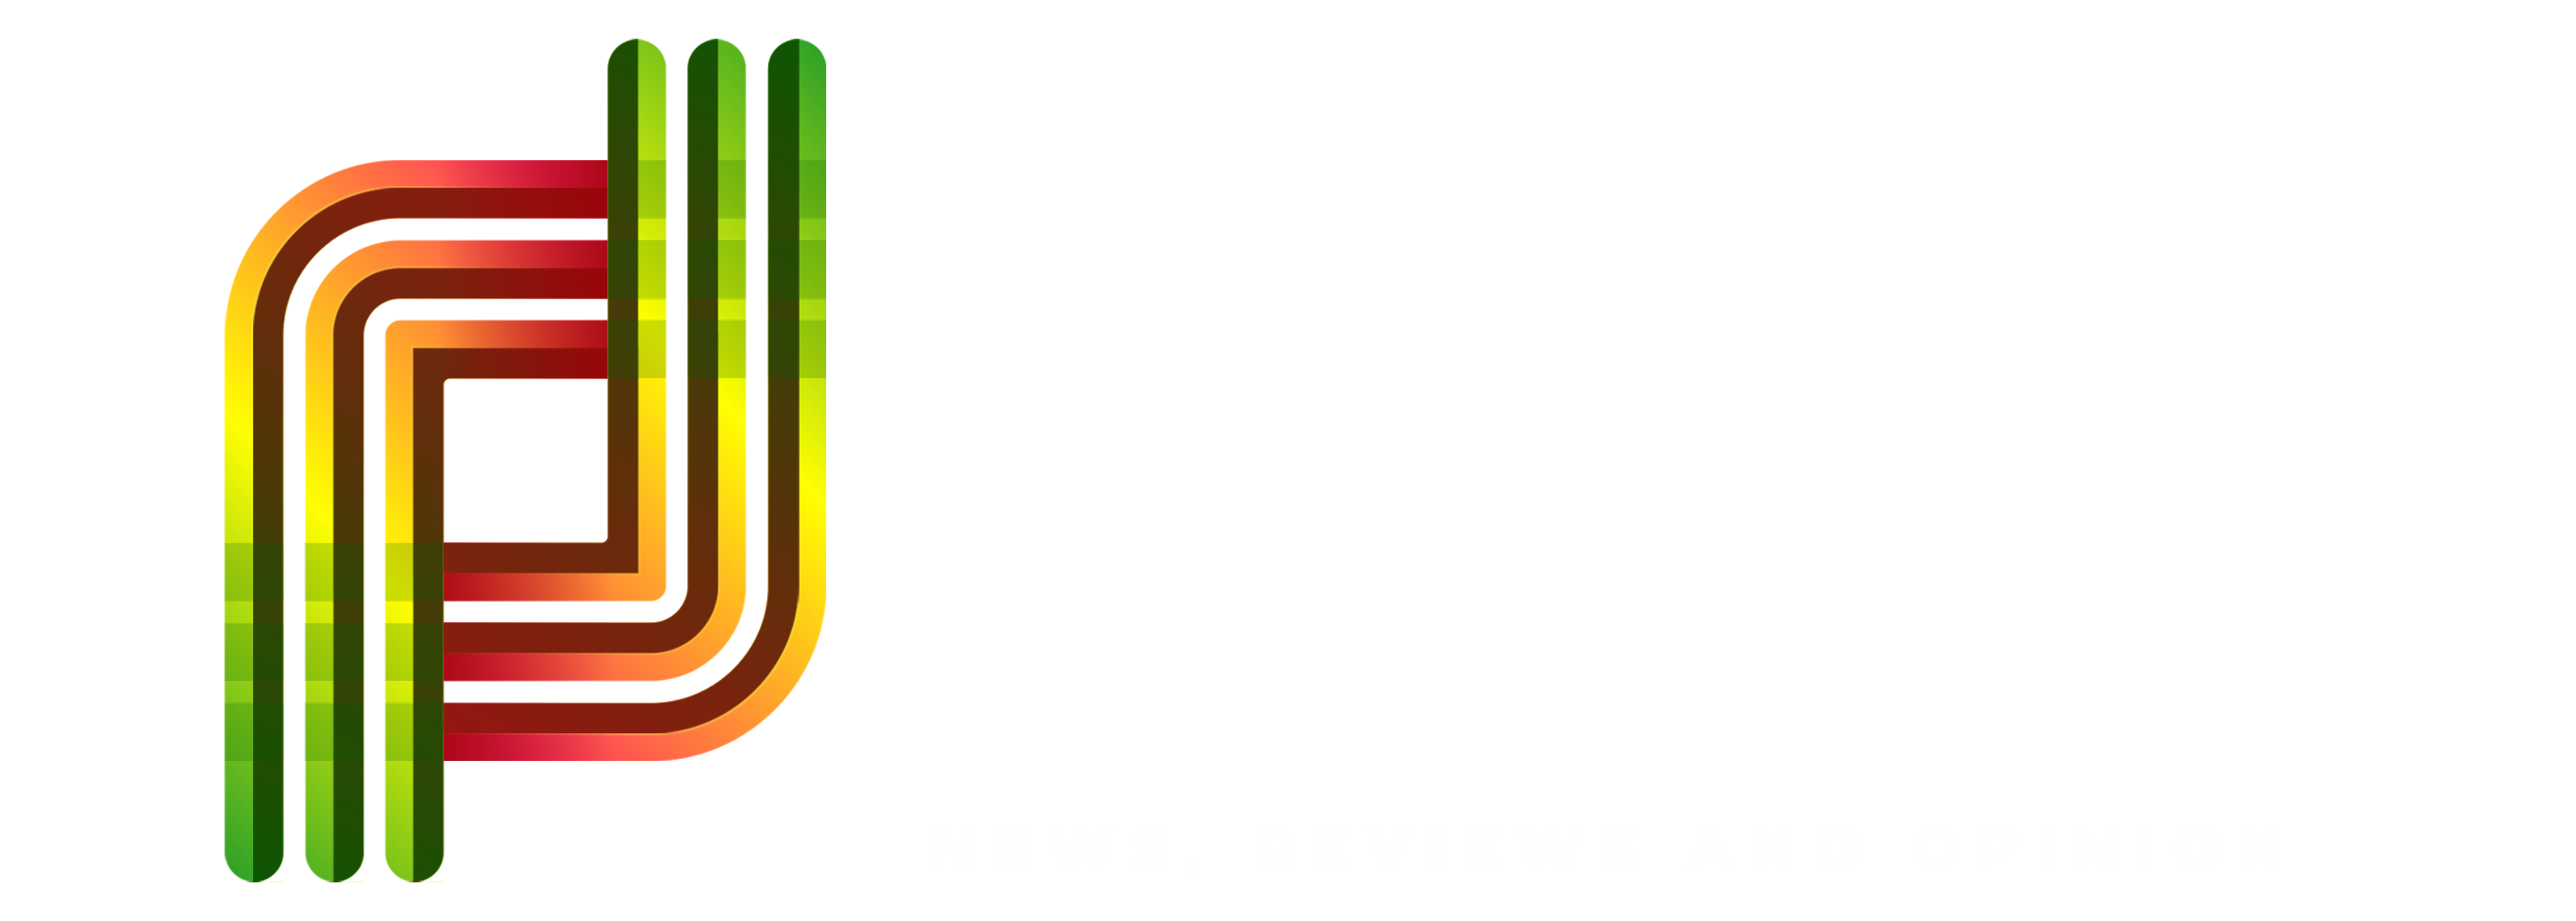 The News Pocket